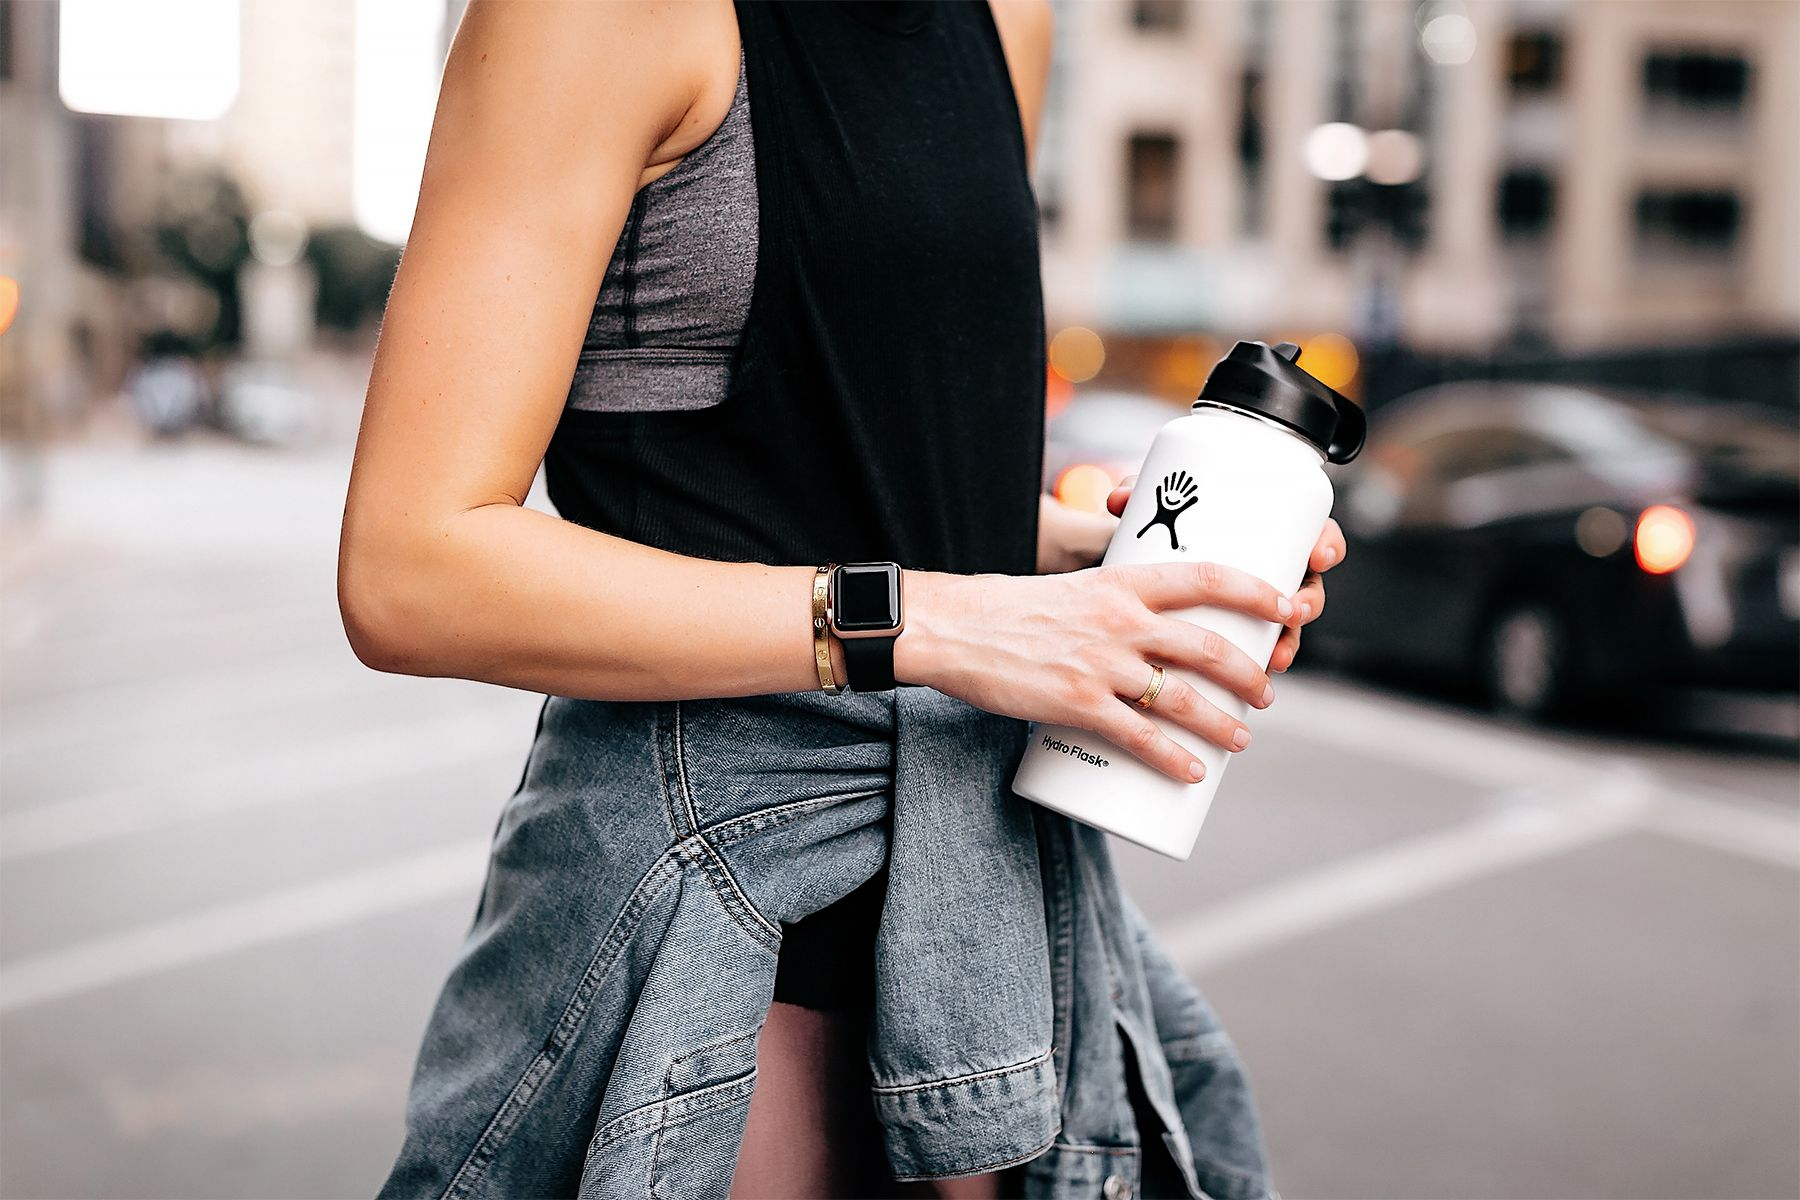 35f4dc9019 Woman Wearing Athleisure Activewear Outfit Alo Black Tank Denim Jacket  Hydro Flask White Water Bottle Apple Watch Fashion Jackson San Diego Fashion  Blogger ...